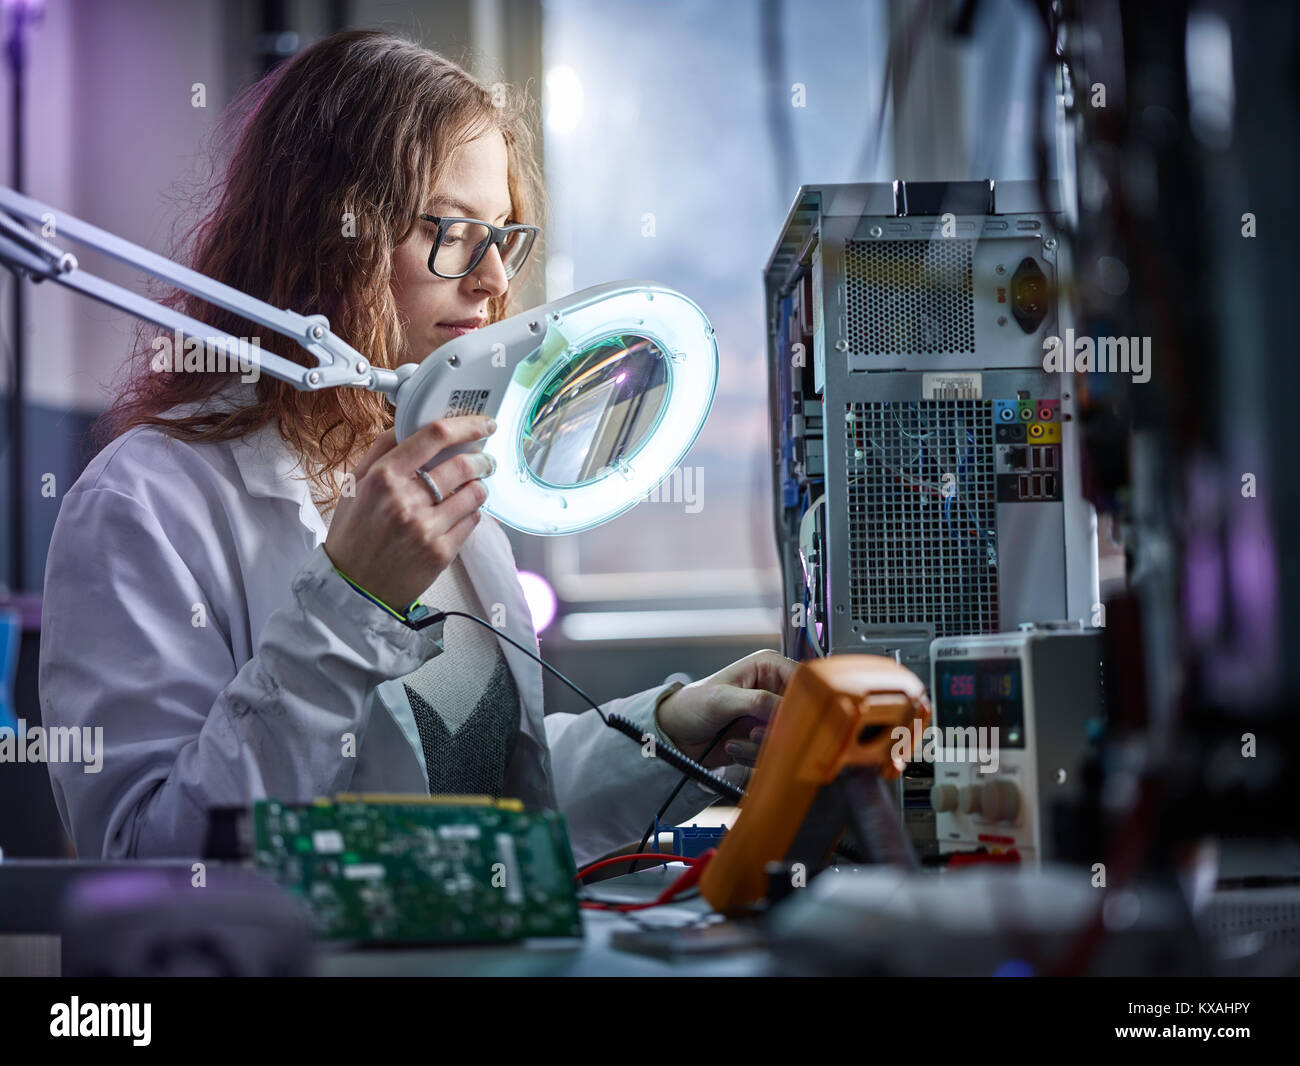 Technician with white lab coat with a measuring device in an electronics laboratory, Austria - Stock Image